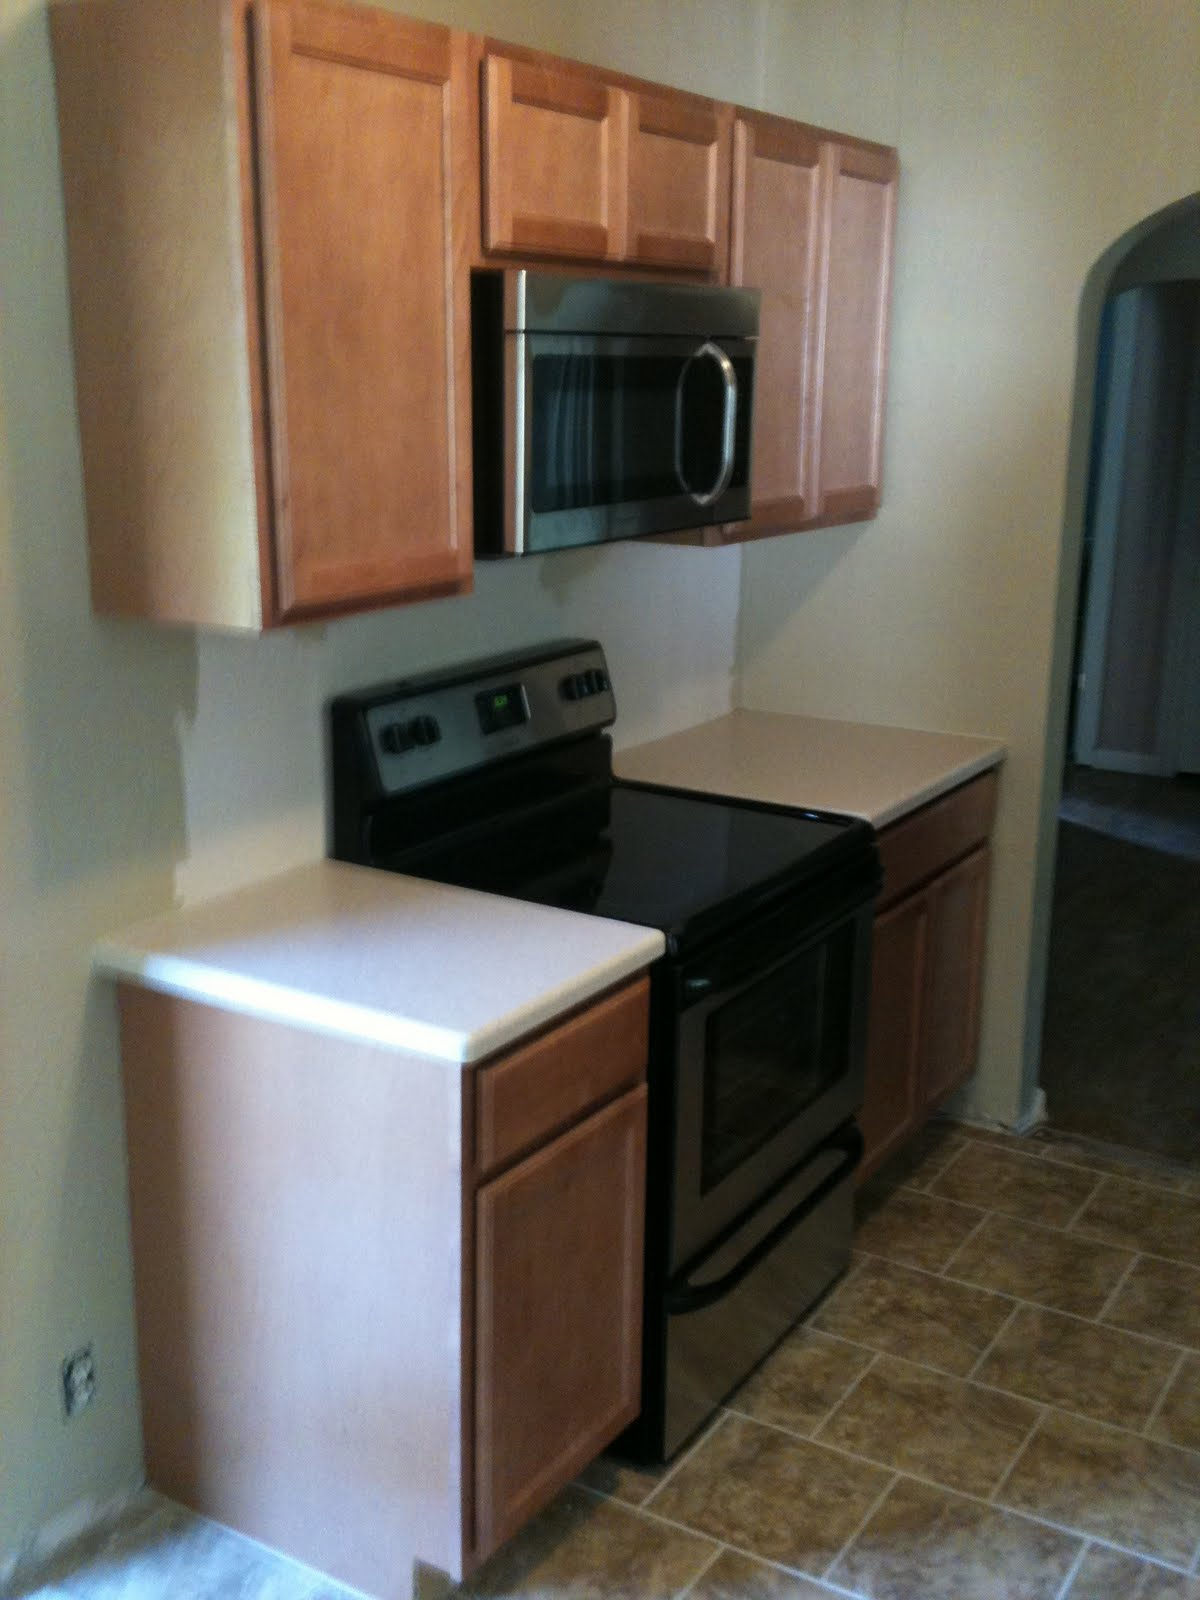 , appliances and cabinets installed. All I need is the backsplash